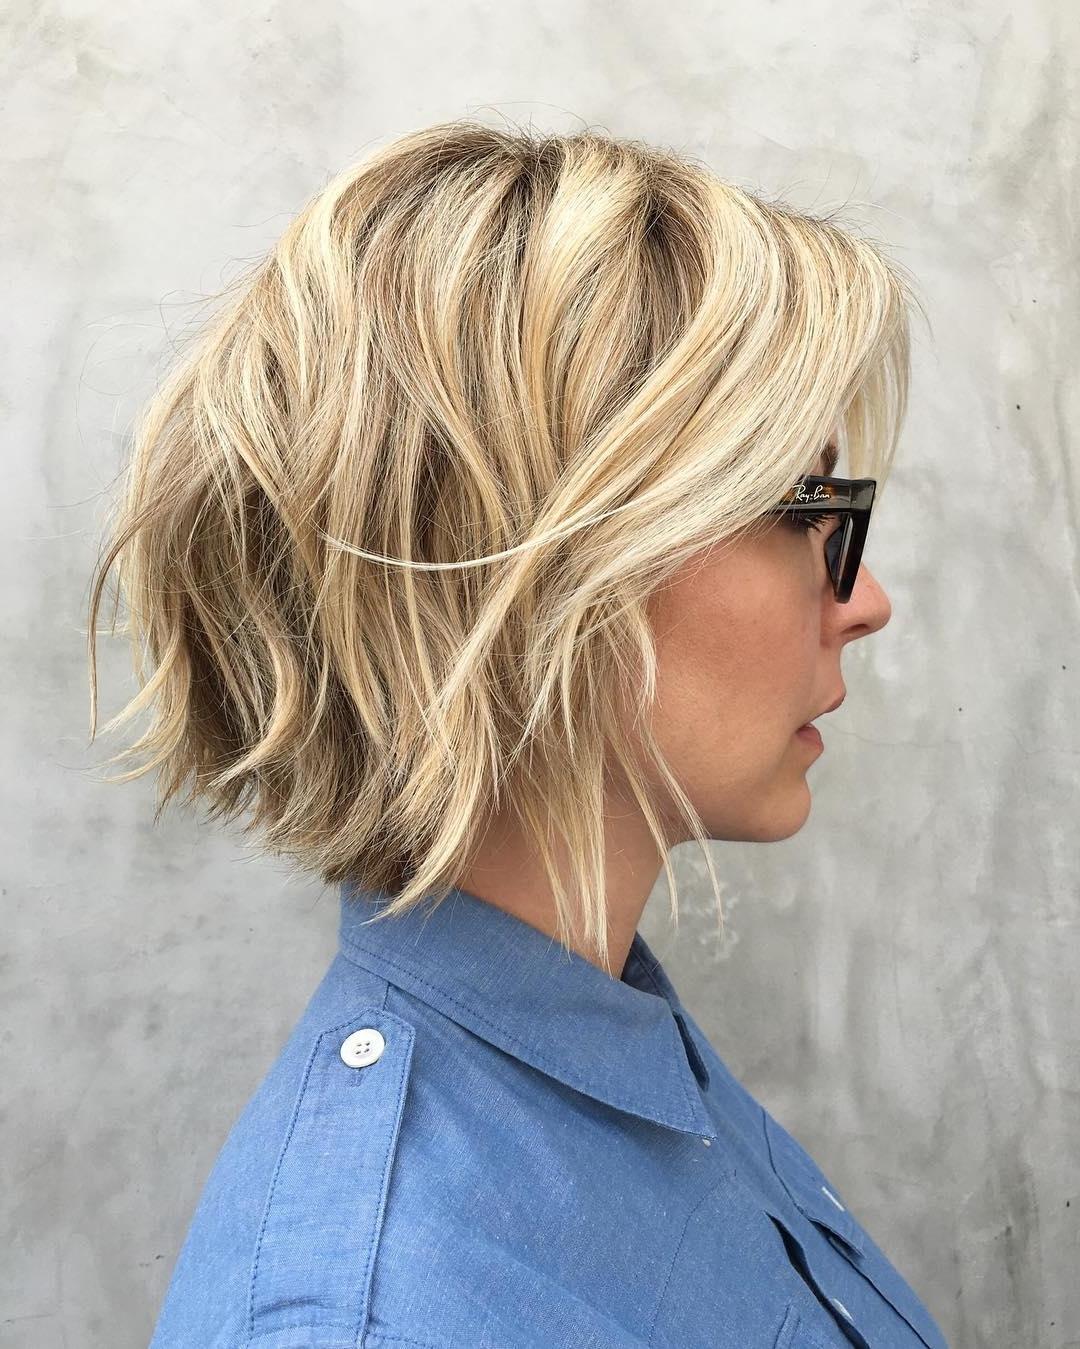 20 Dirty Blonde Hair Ideas That Work On Everyone: 2019 Latest Dirty Blonde Bob Hairstyles